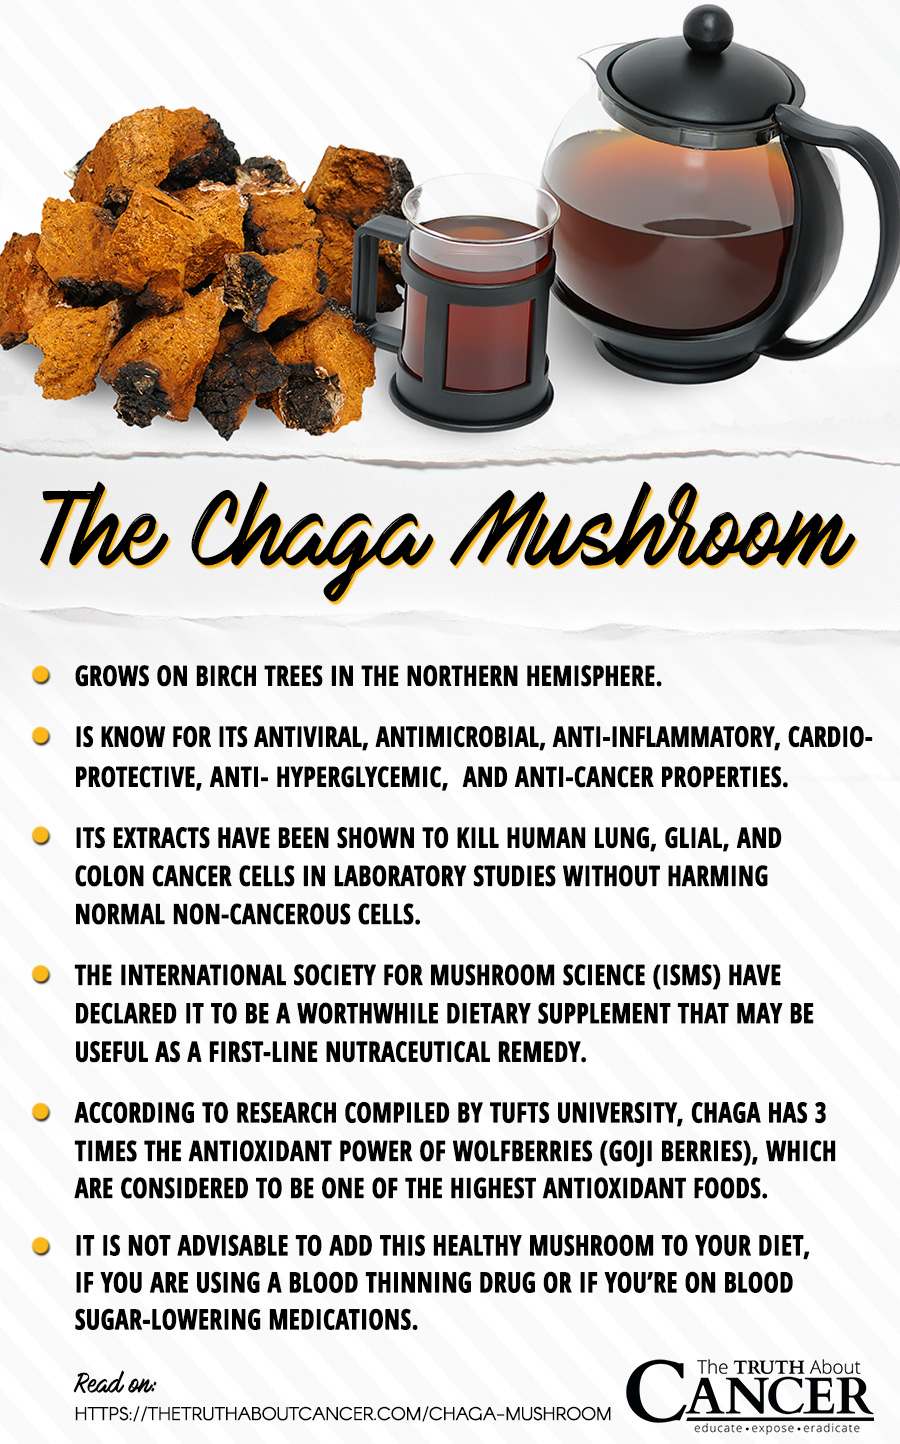 Chaga Mushroom facts backed by studies. Click on the image to read the full article on The Truth About Cancer.